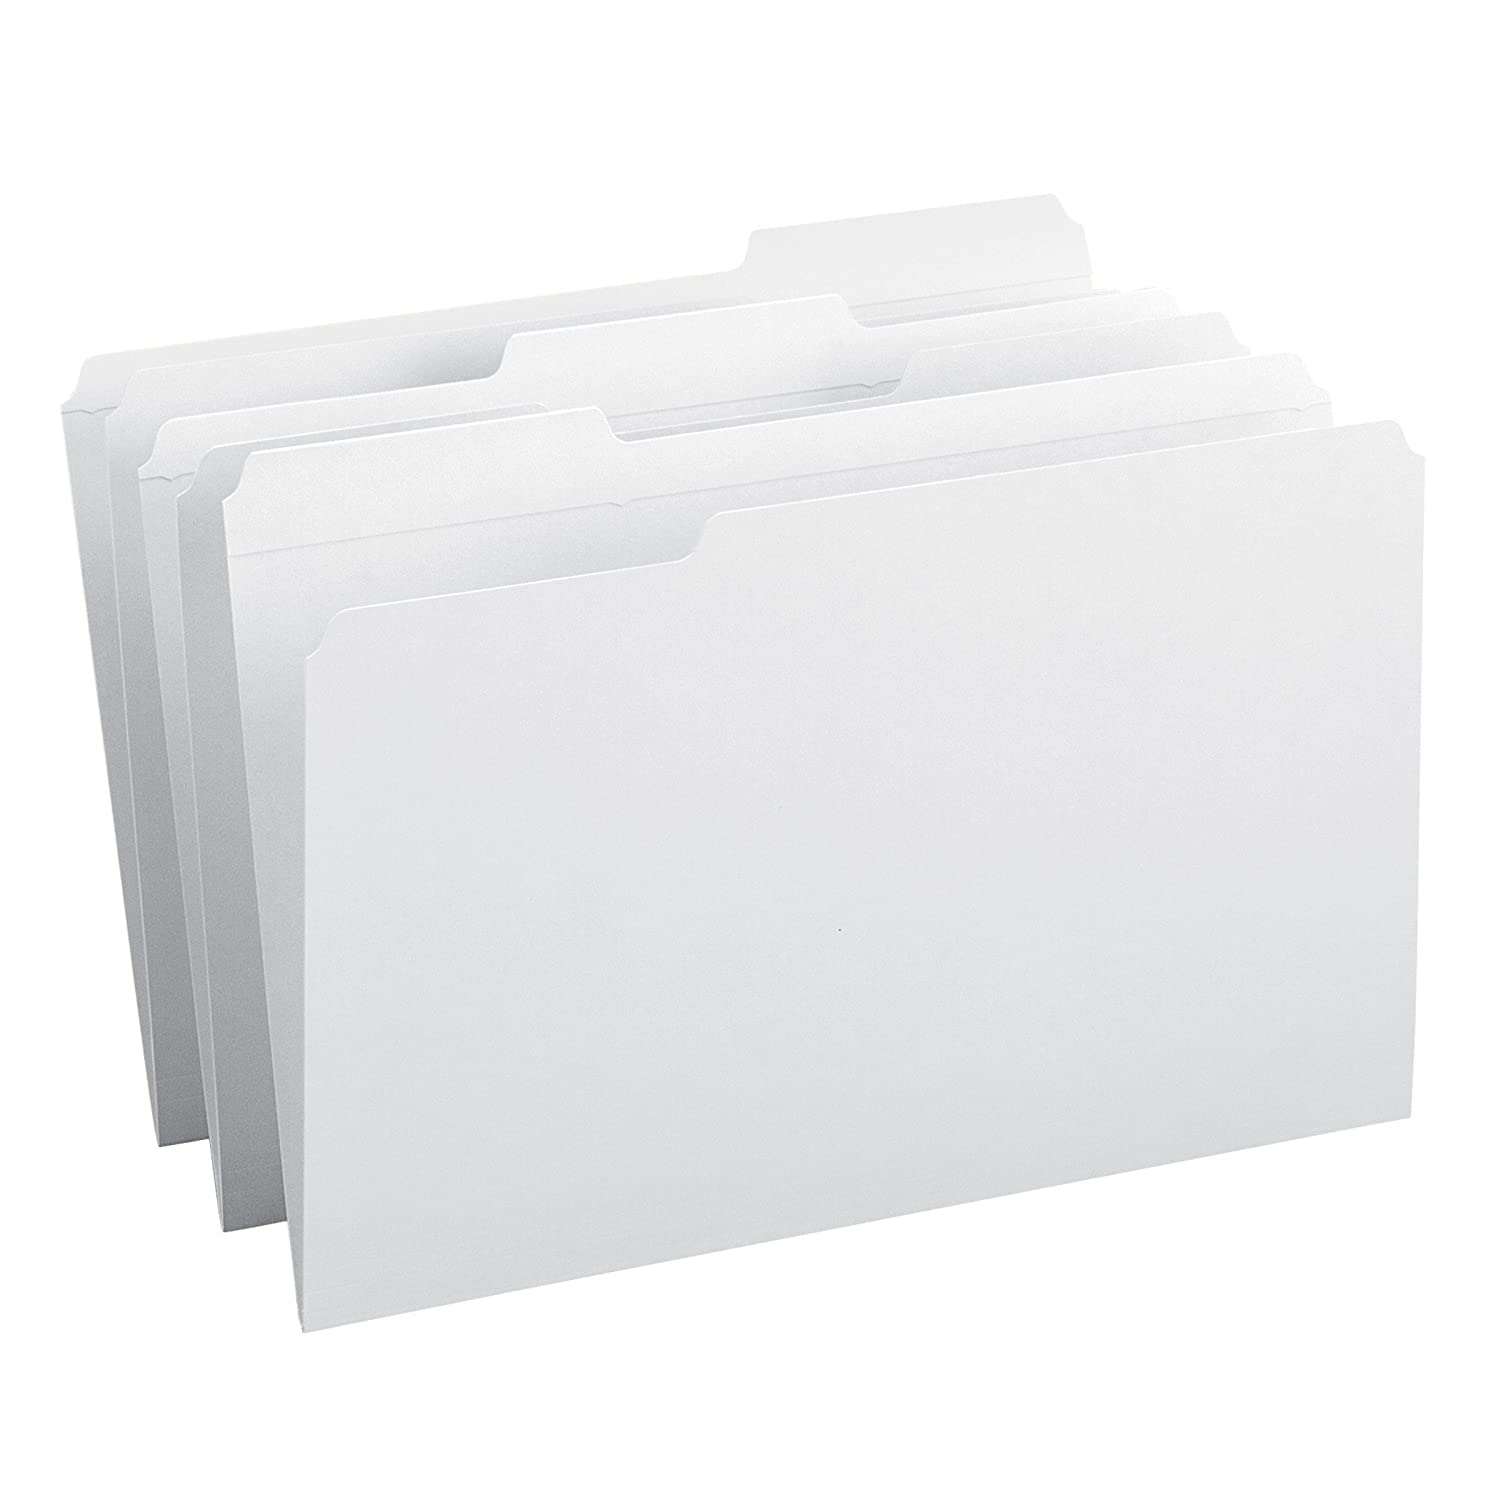 File Folders, 1/3 Cut, Reinforced Top Tab, Legal, White, 100/Box (並行輸入品) B0015ZSQ1E 1/3-Cut Legal Size|ホワイト ホワイト 1/3-Cut Legal Size